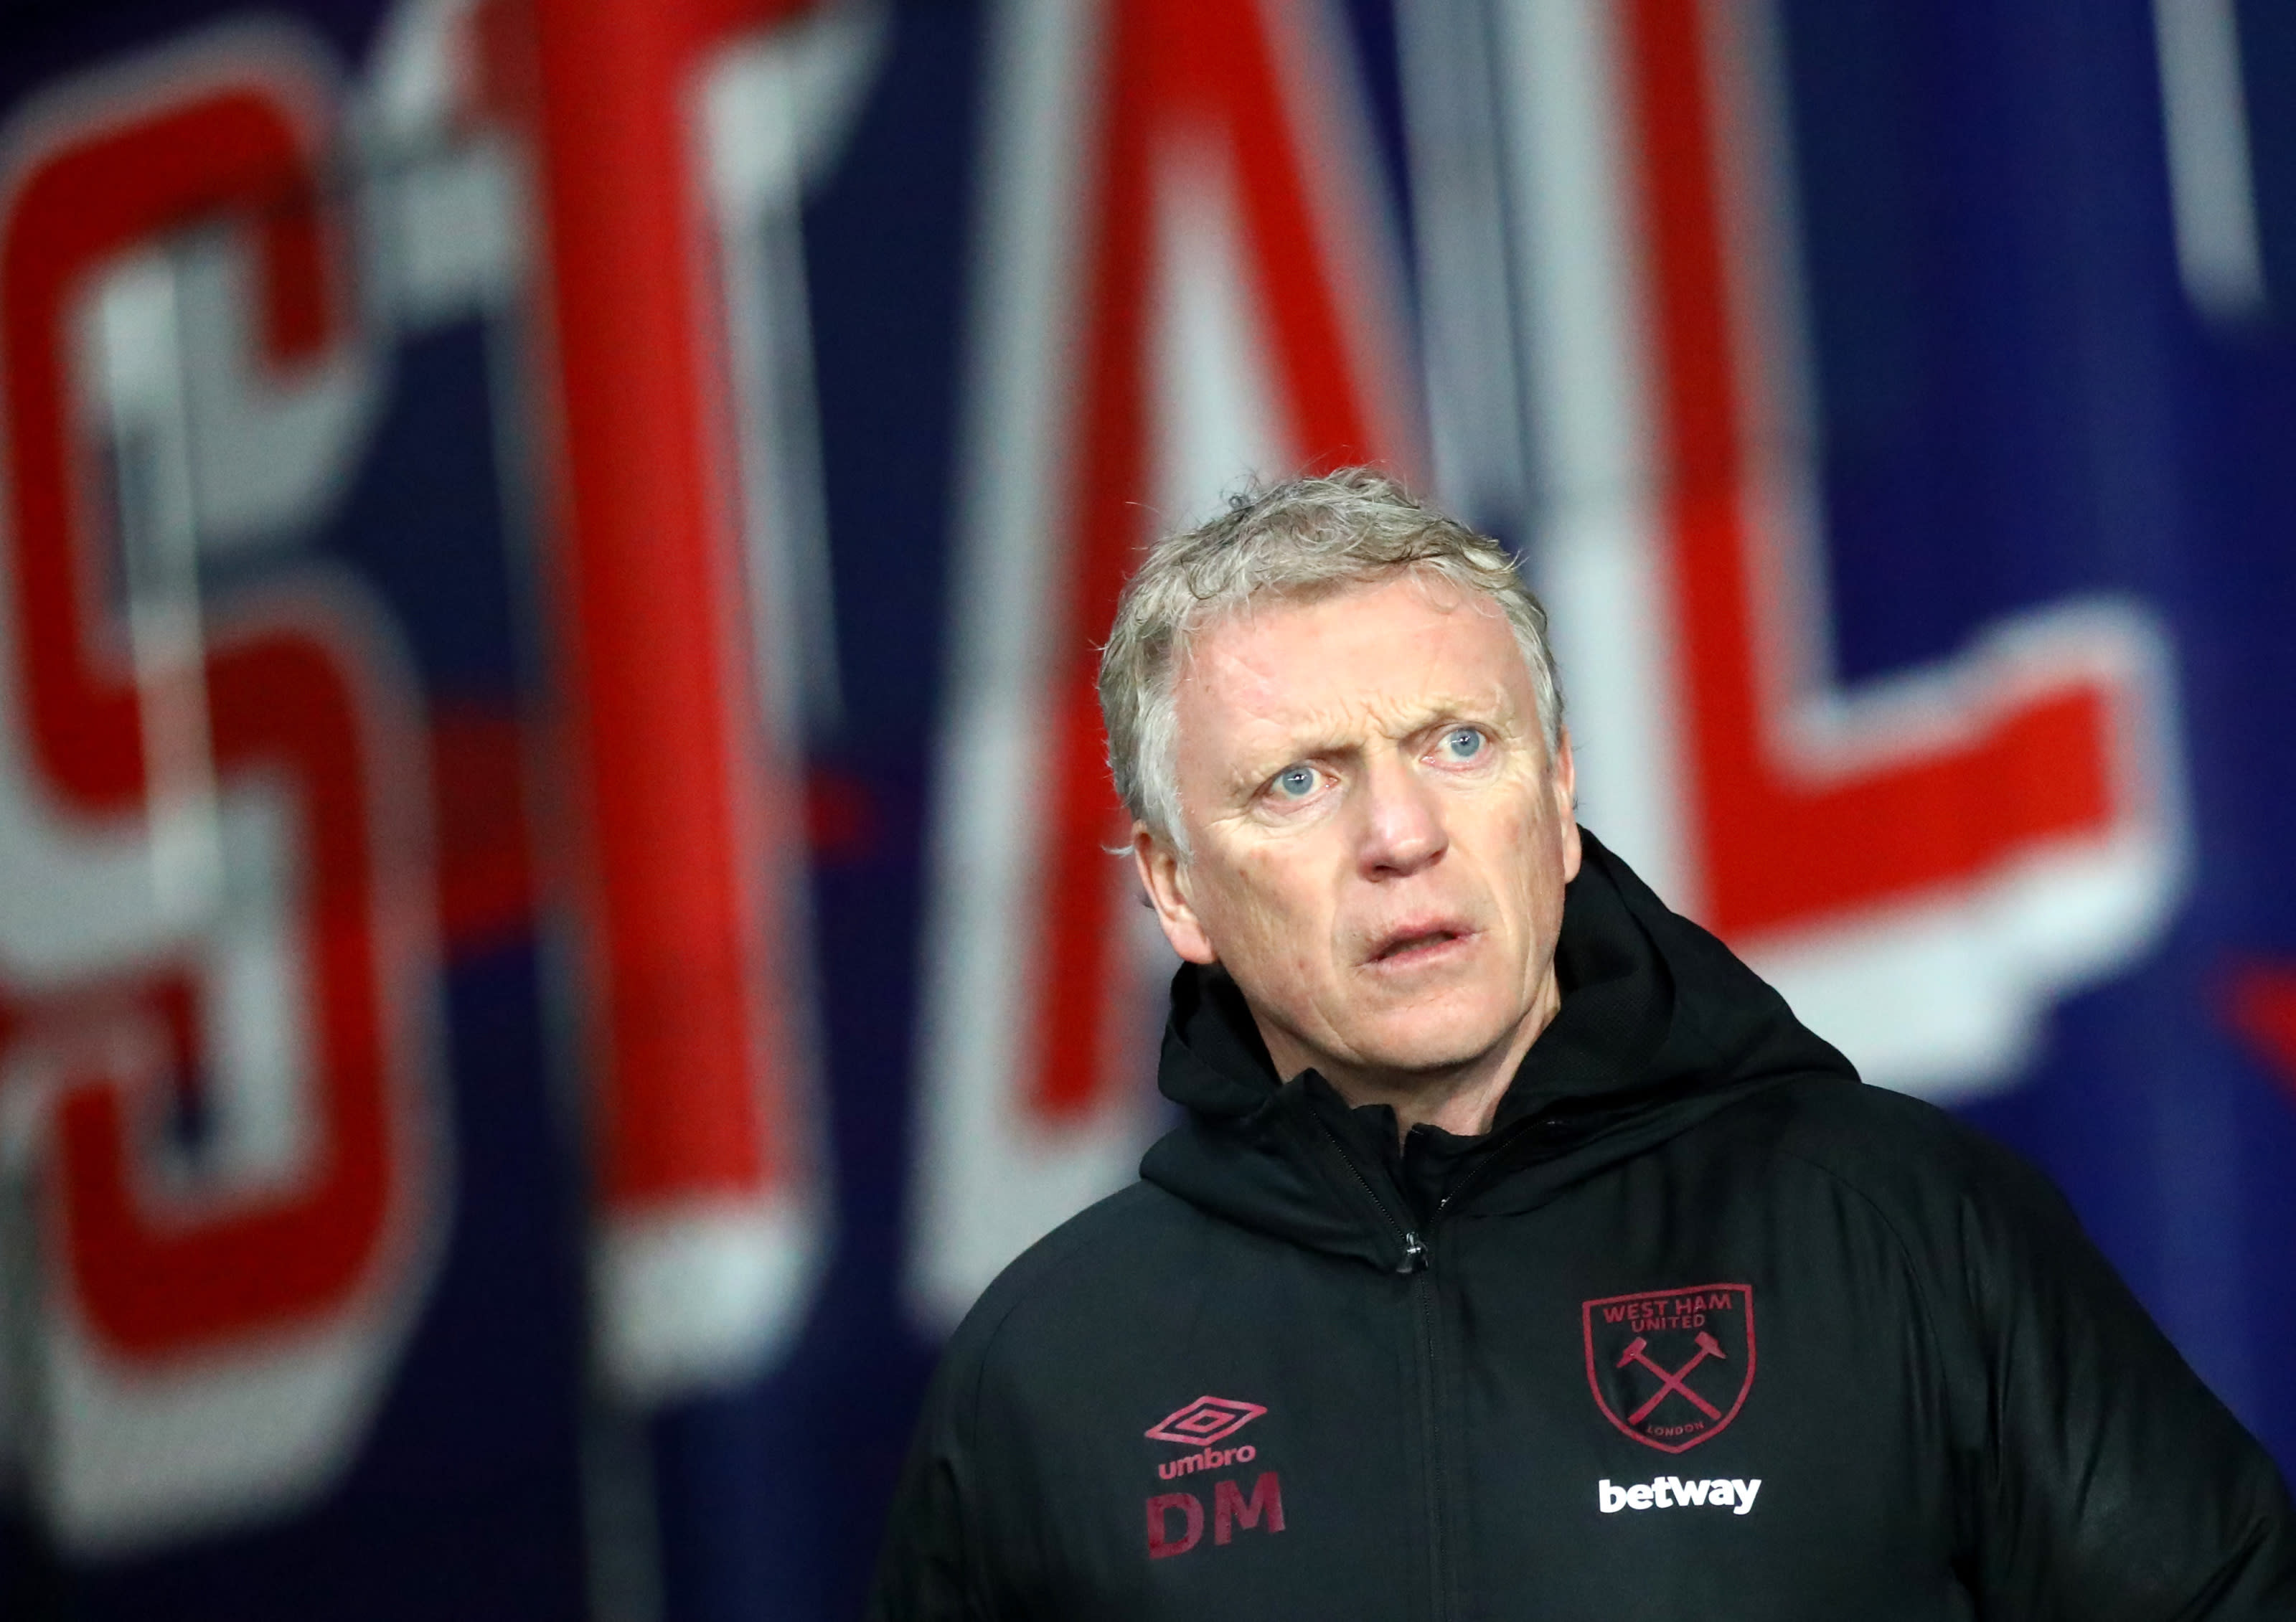 Manager of West Ham David Moyes during the Premier League match. (Photo by Chloe Knott - Danehouse/Getty Images)